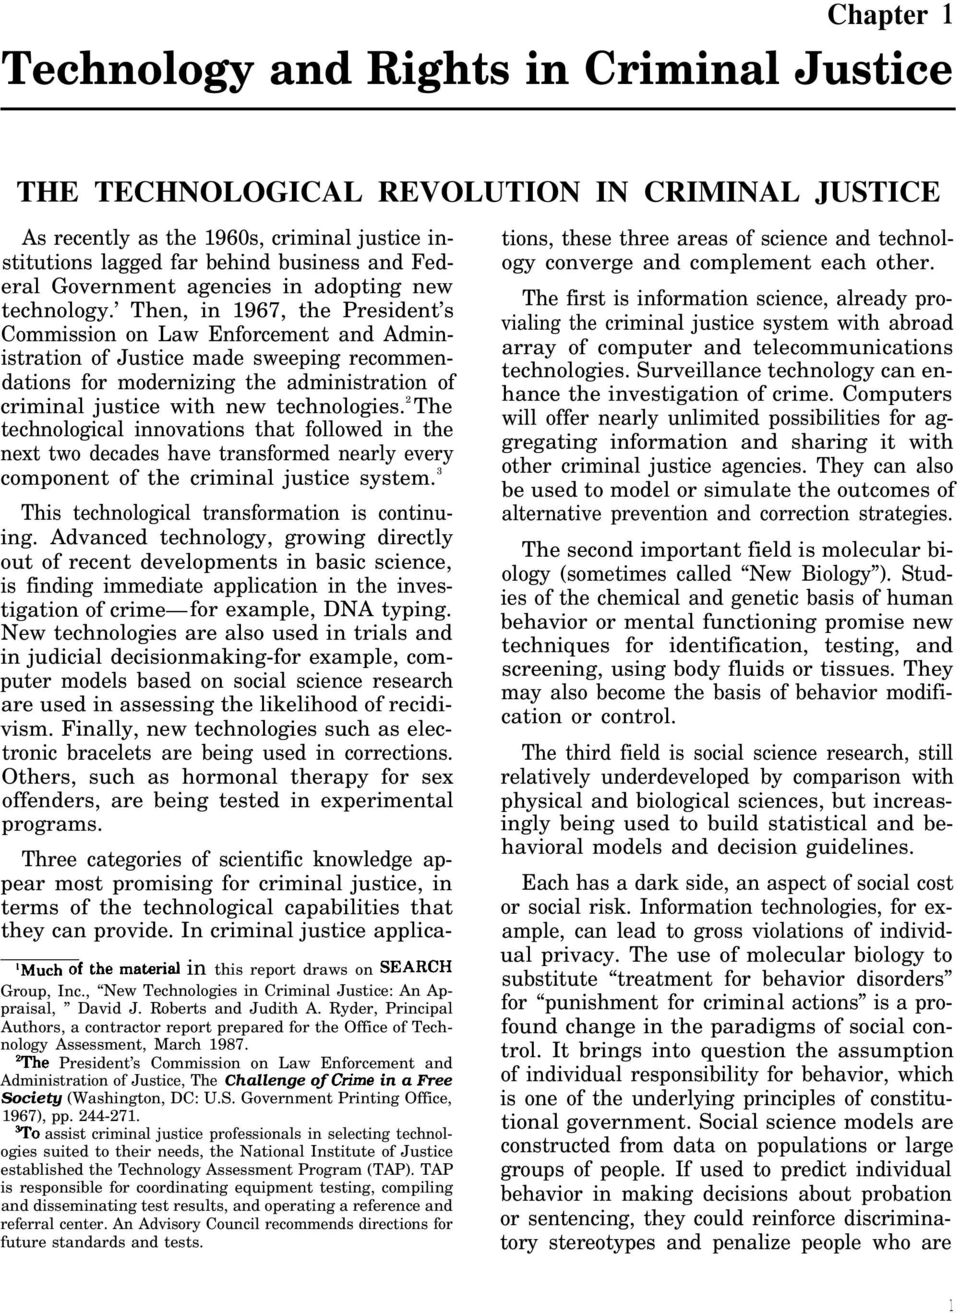 Then, in 1967, the President s Commission on Law Enforcement and Administration of Justice made sweeping recommendations for modernizing the administration of criminal justice with new technologies.